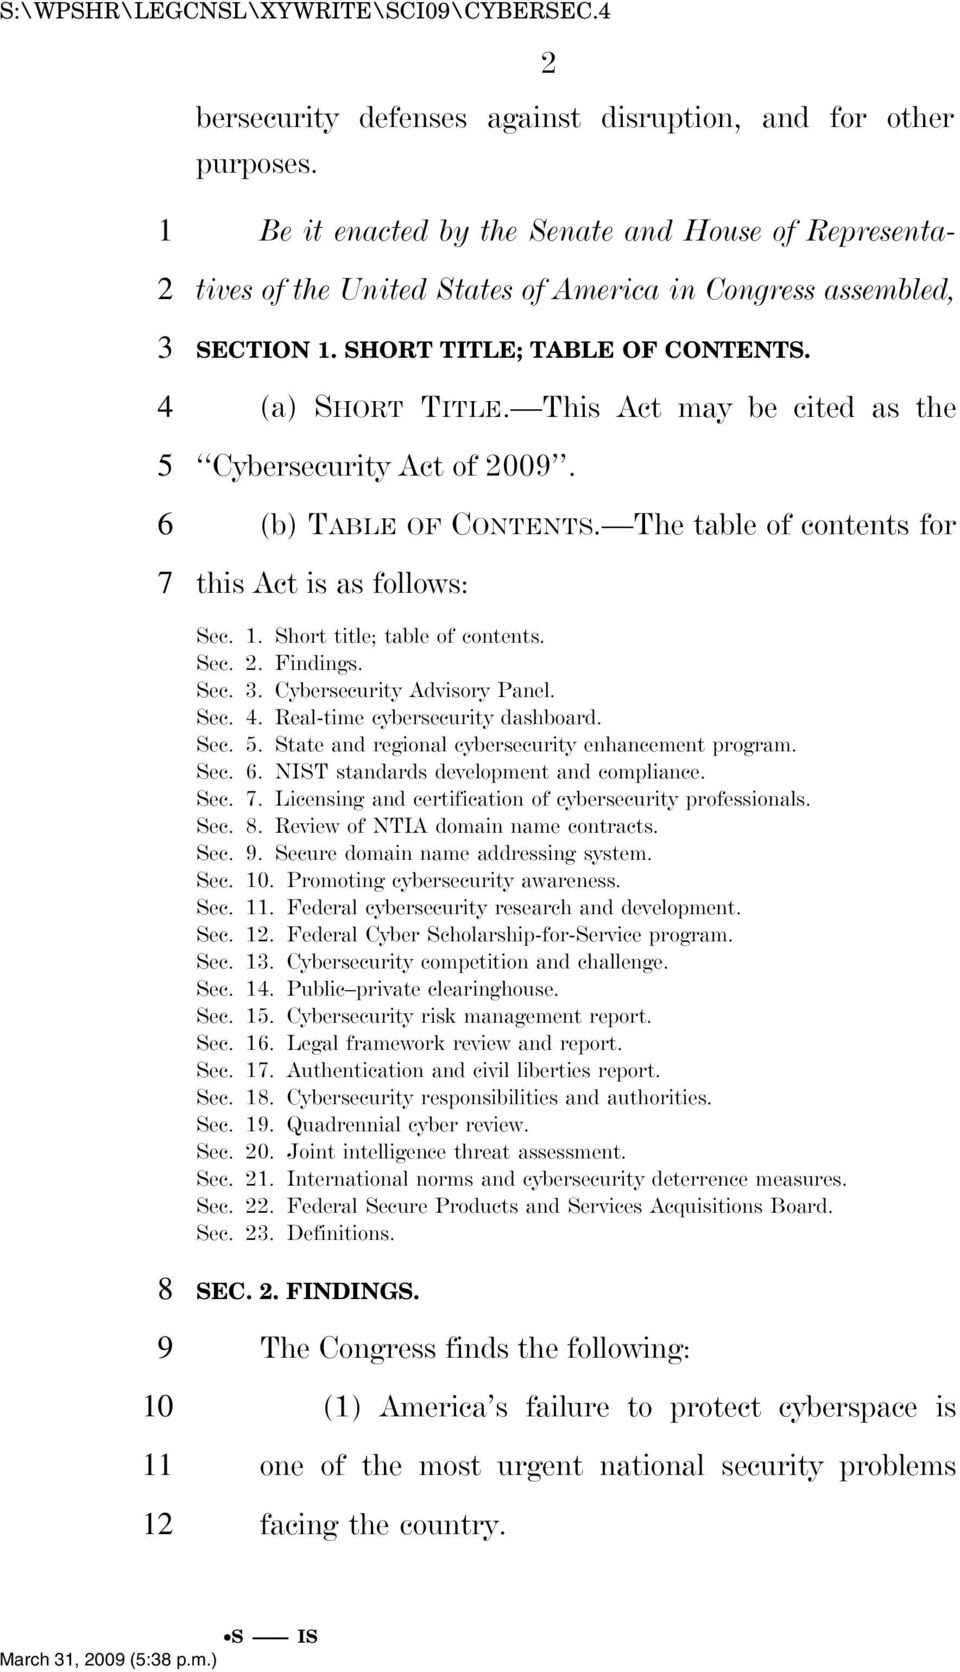 This Act may be cited as the Cybersecurity Act of 00. (b) TABLE OF CONTENTS. The table of contents for this Act is as follows: Sec.. Short title; table of contents. Sec.. Findings. Sec.. Cybersecurity Advisory Panel.